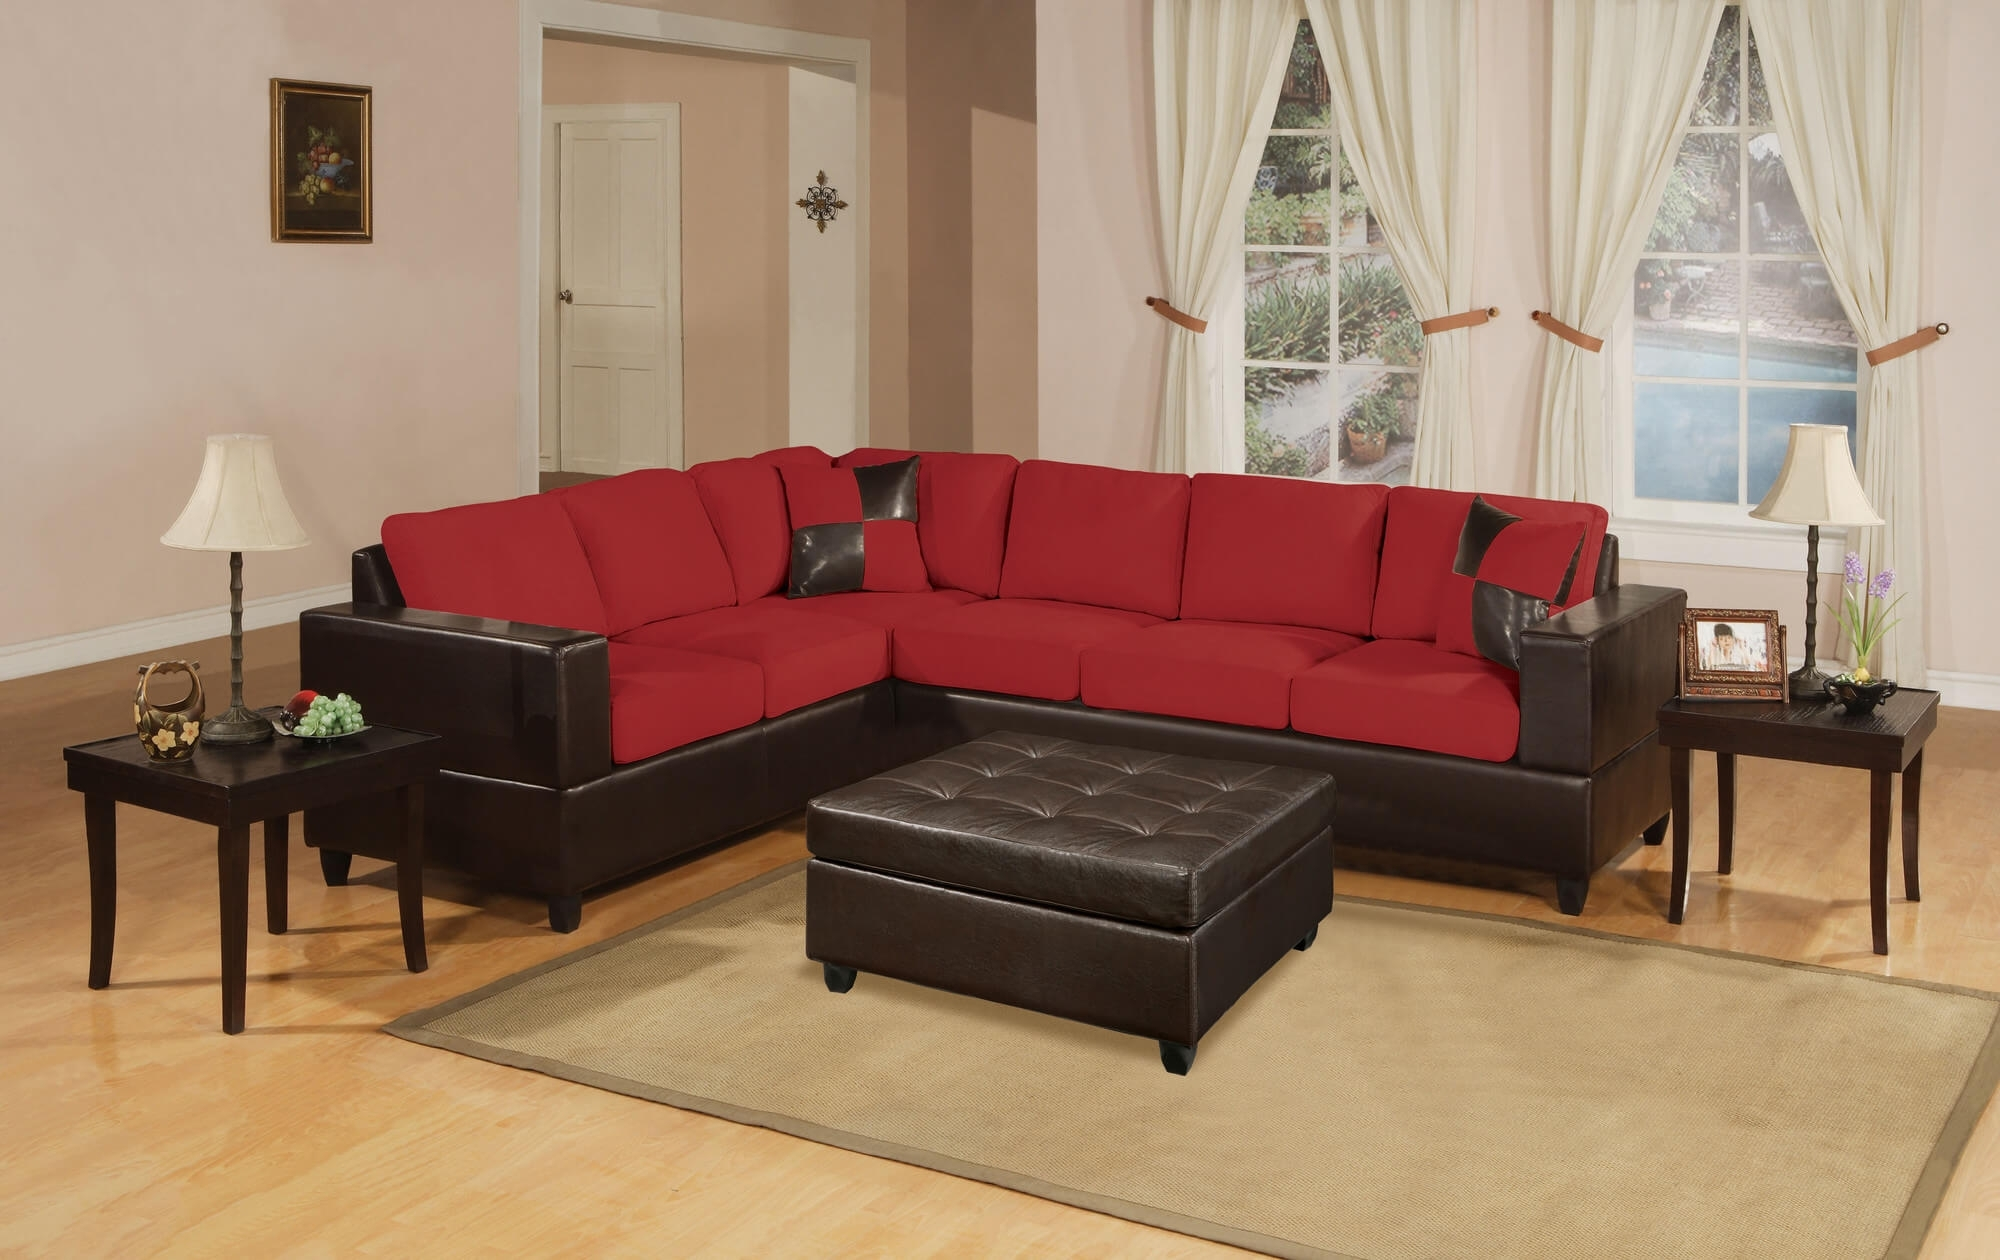 18 Stylish Modern Red Sectional Sofas regarding Red Sectional Sofas (Image 2 of 10)